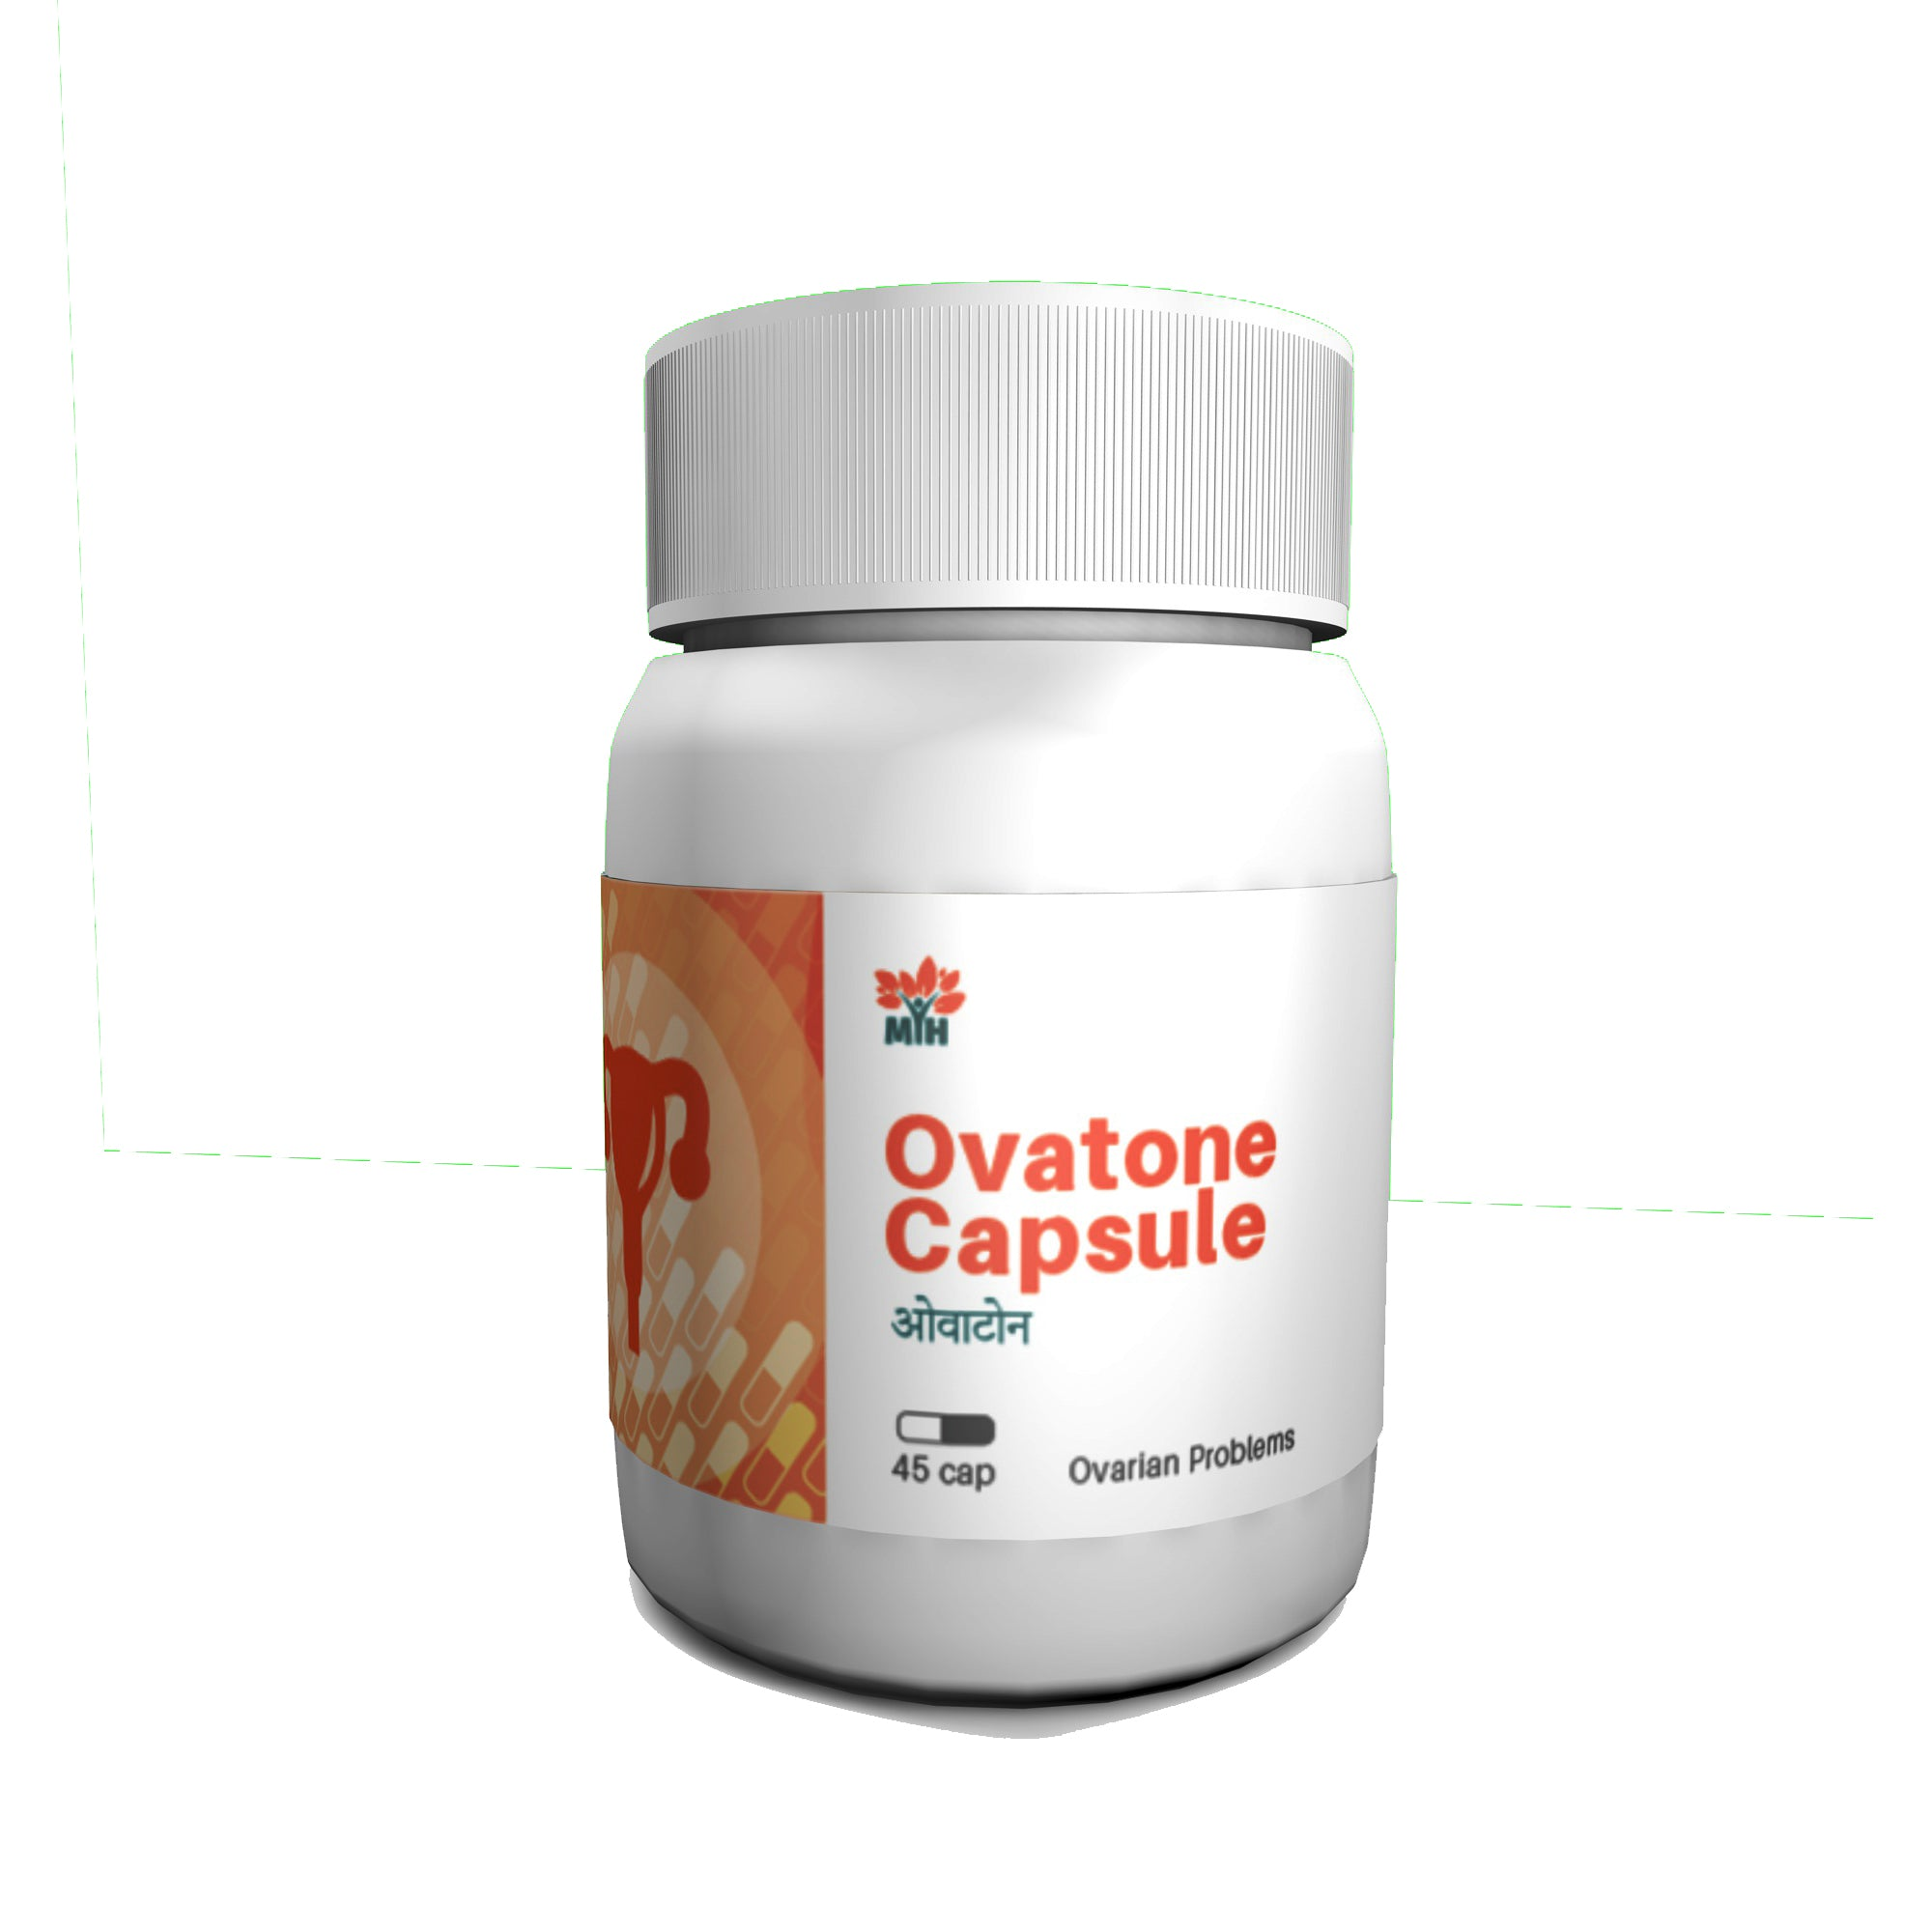 Mansar Herbals Ovatone Capsules has an antiinflammatory property provides relief from body pain. Regular use of this oil is beneficial in case of spondylitis, paralysis, facial paralysis, a frozen shoulder, nervous pain. It also relieves spasms, cramps and tones up the muscles.